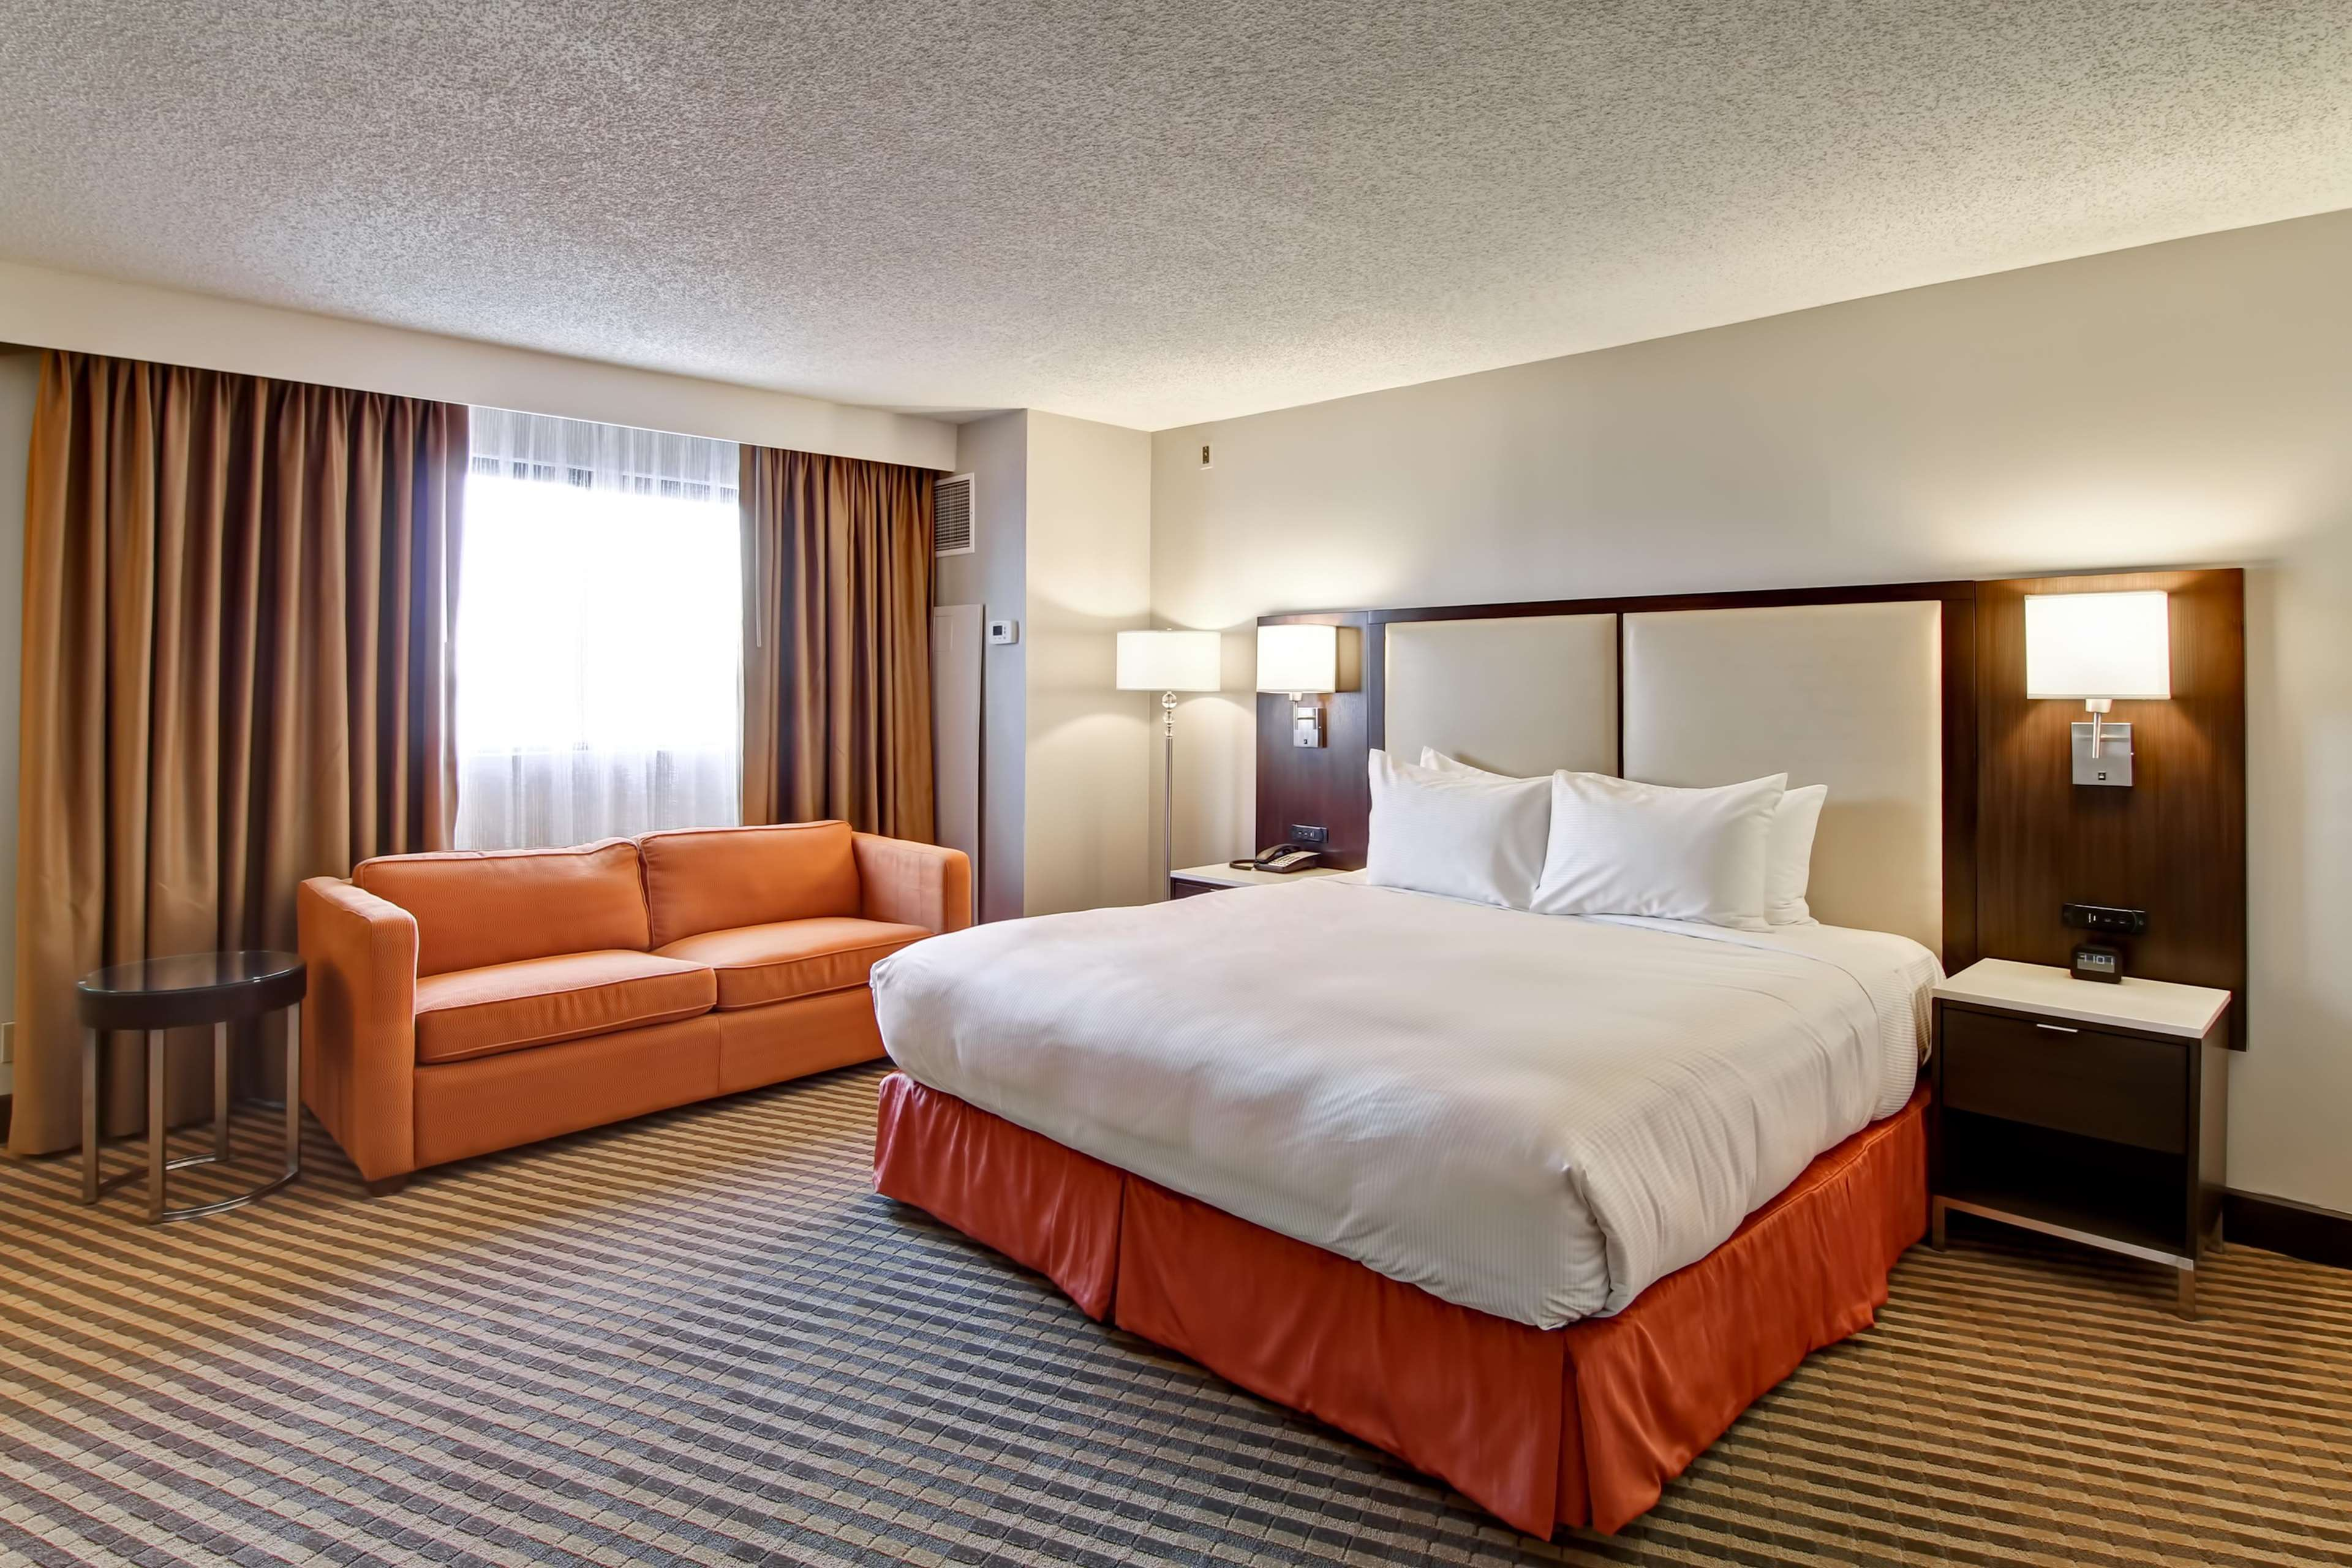 DoubleTree by Hilton Hotel Pleasanton at the Club image 24